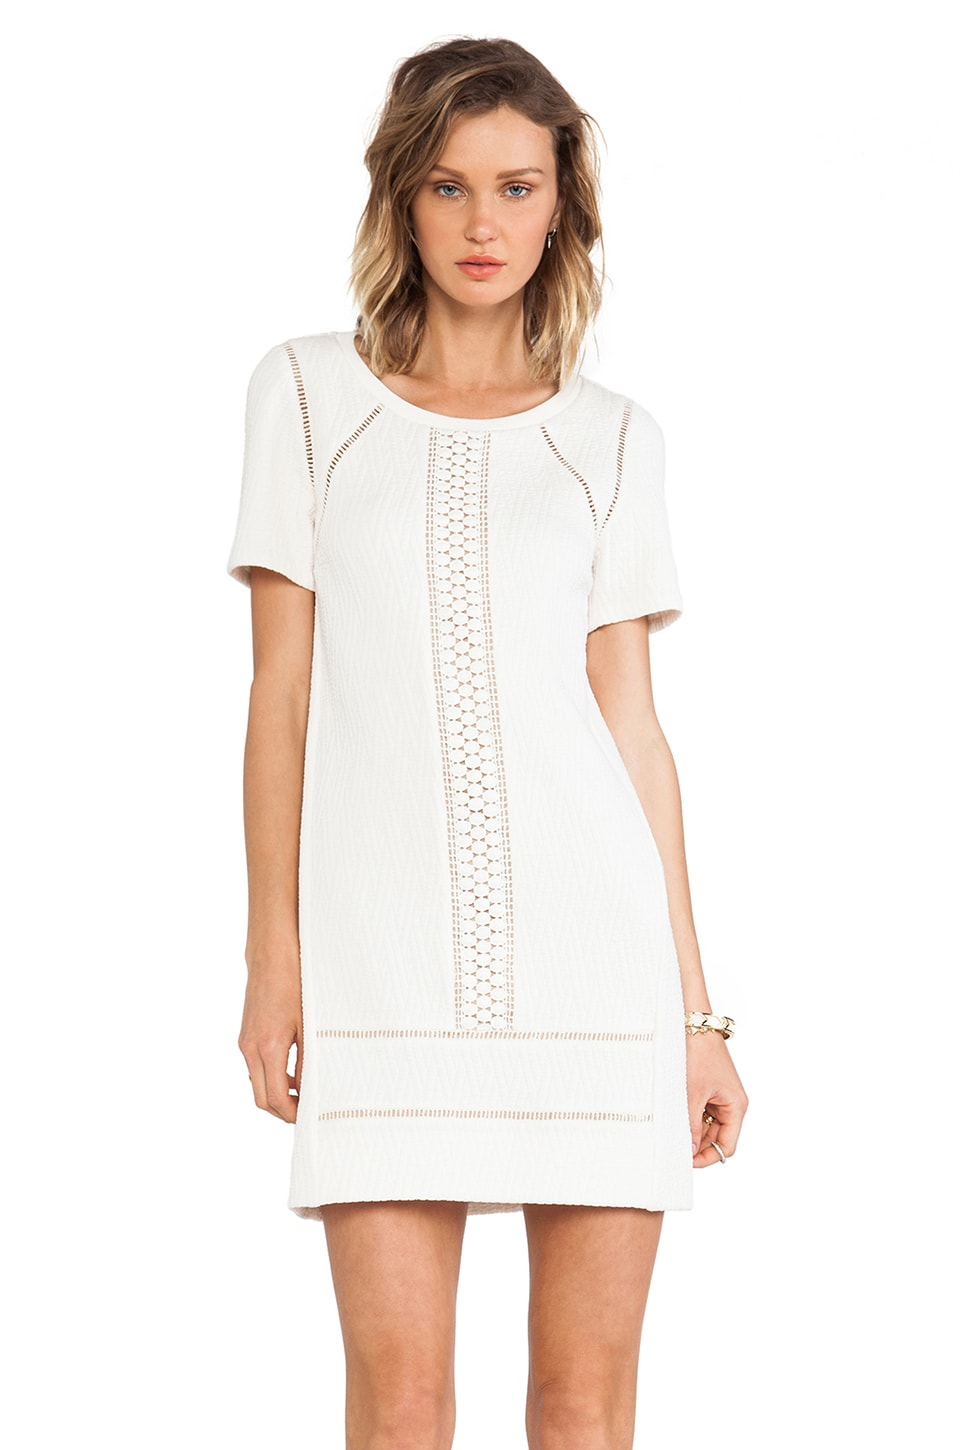 Marc by Marc Jacobs Demi Jacquard Tunic Dress in Antique White